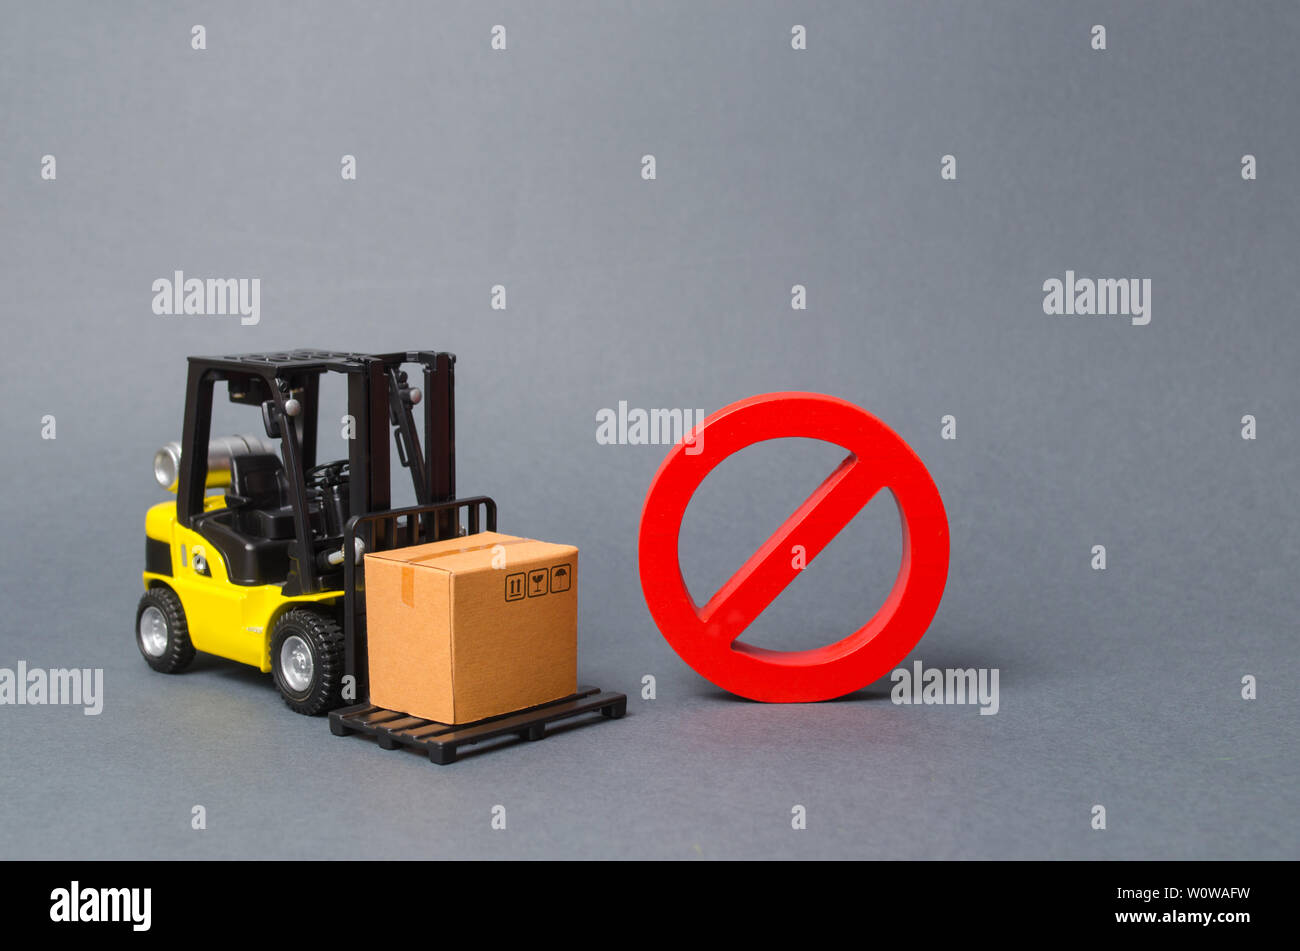 Forklift truck carries a cardboard box near a red symbol NO. Embargo, trade wars. No delivery. Restriction on the importation of goods, proprietary fo - Stock Image